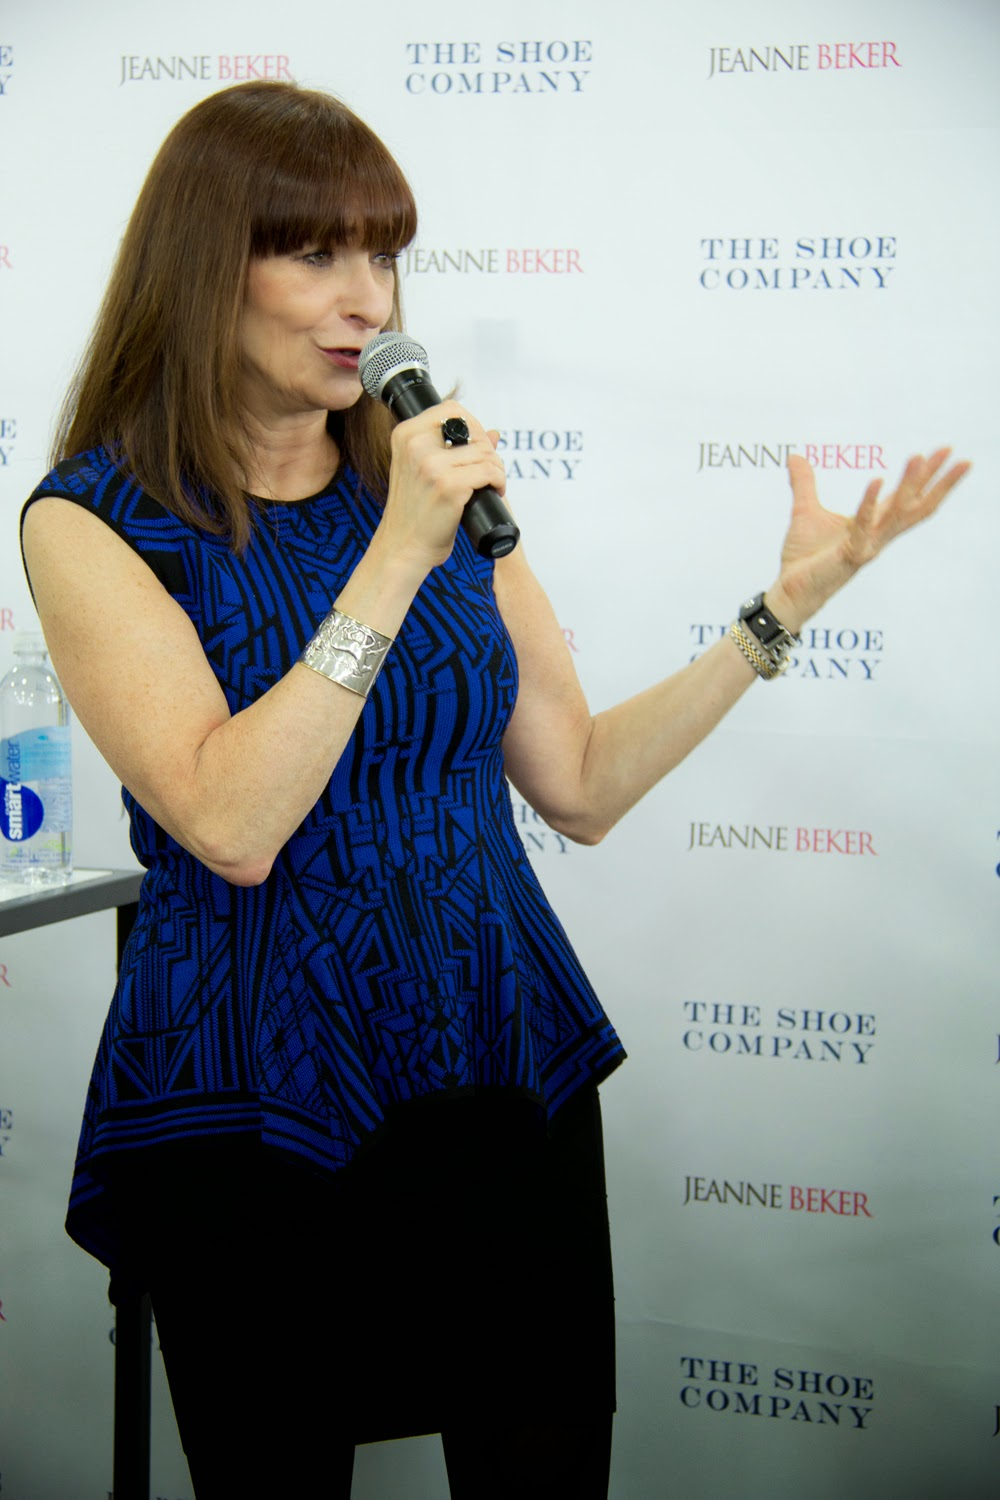 Jeanne-Beker, Media-Event, Preview, The-Shoe-Company